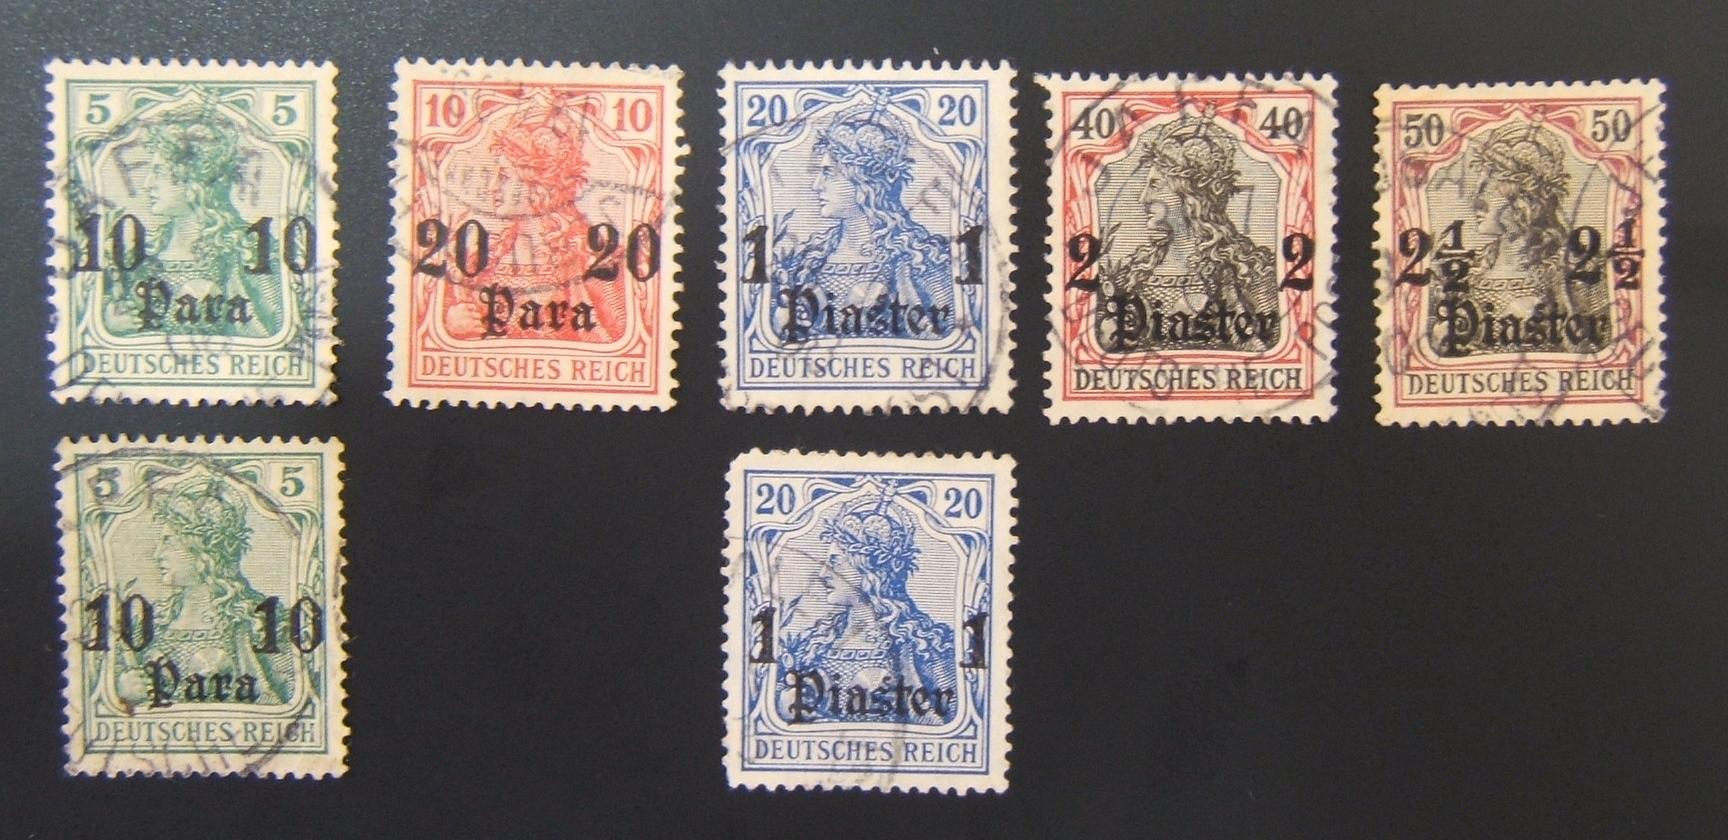 German Holyland Post: lot x7 Jer. & Jaffa pmkd Deutsches Reich stps w/wmk